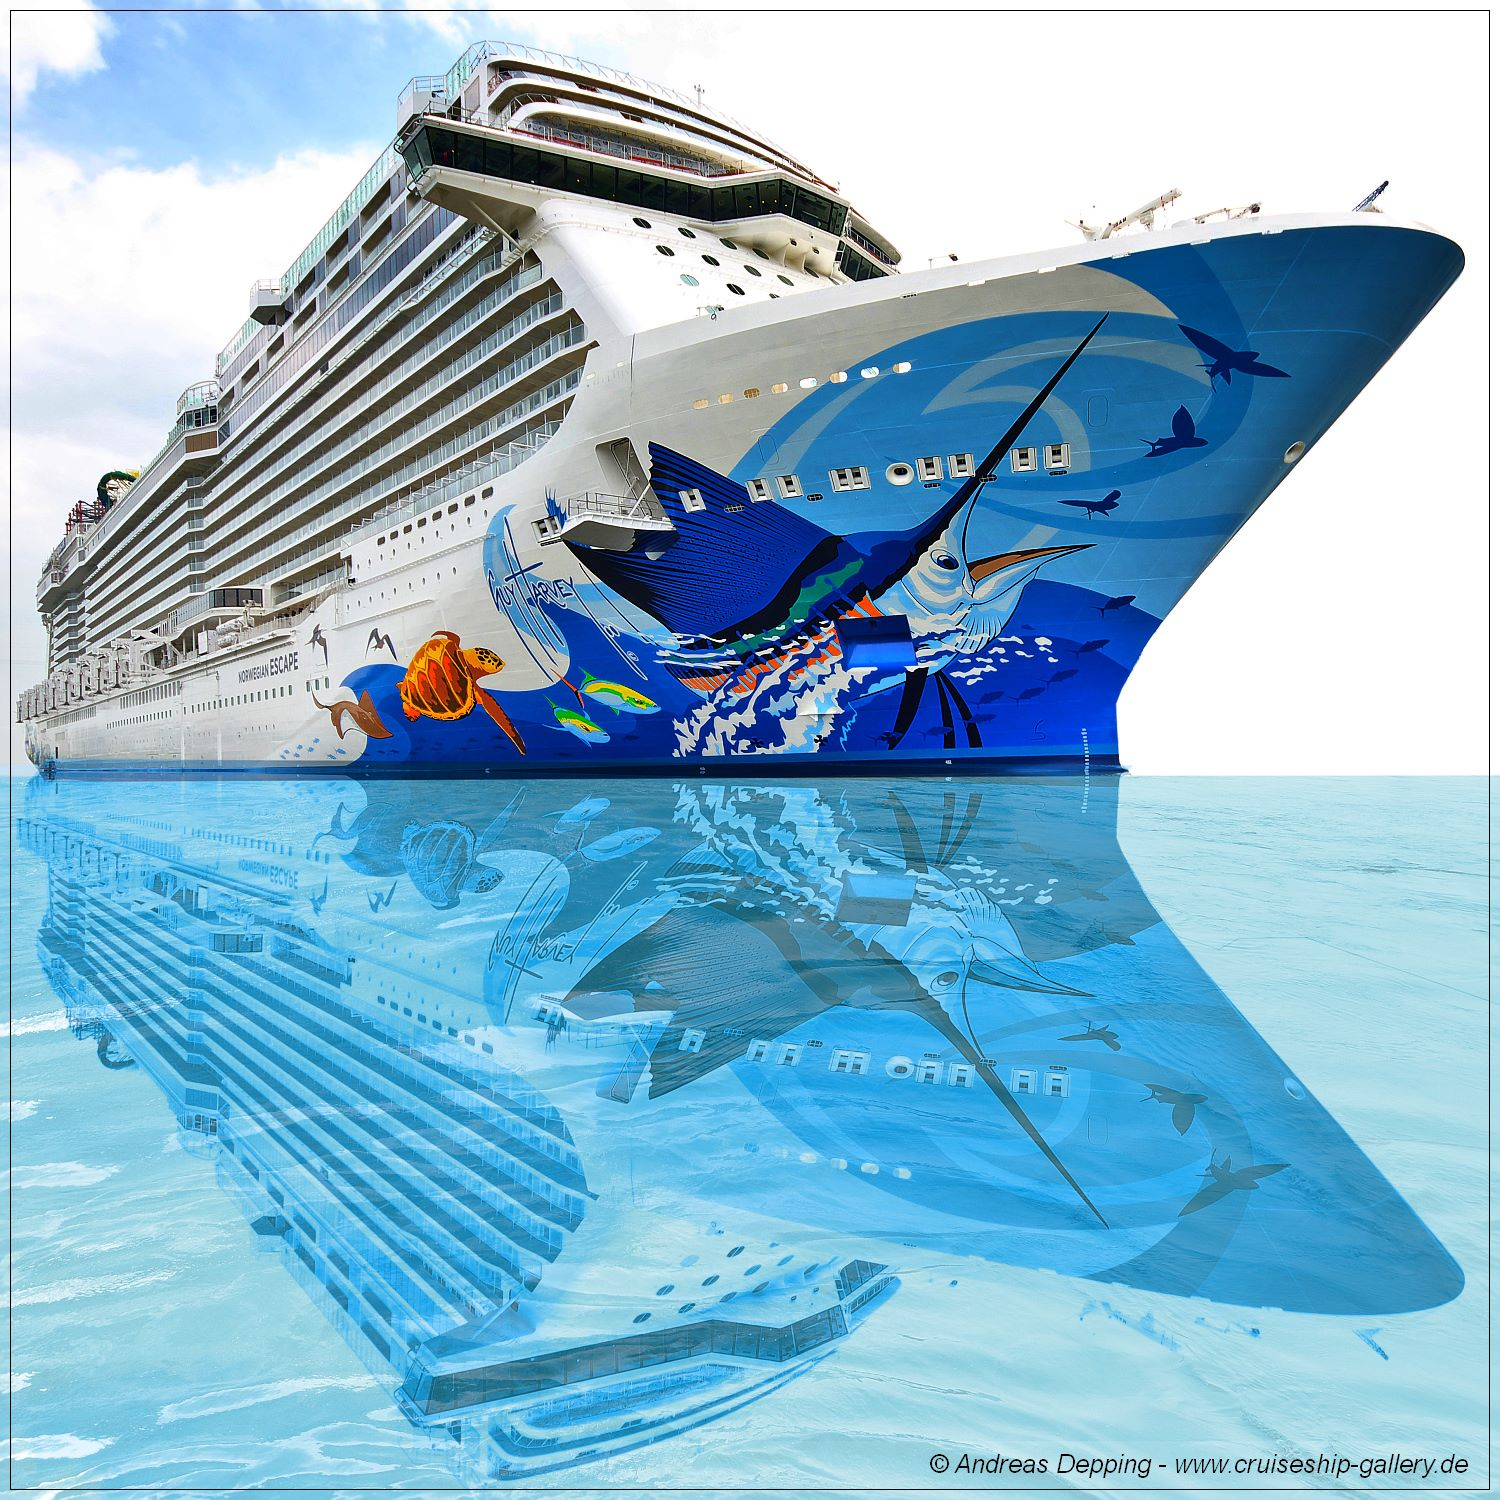 Cruiseship Gallery